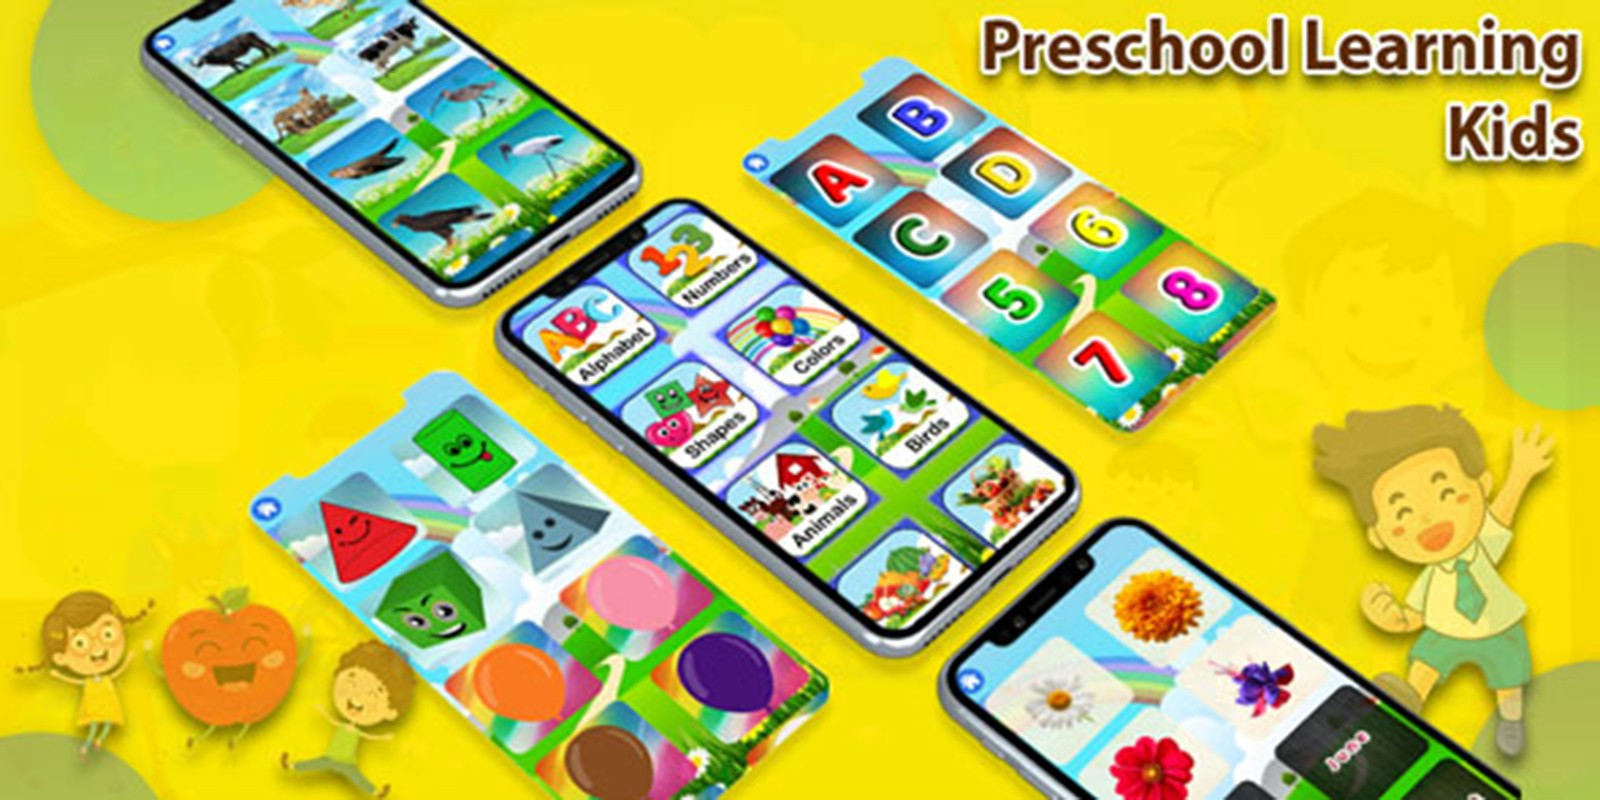 Preschool Learning Kids - Android Source Code